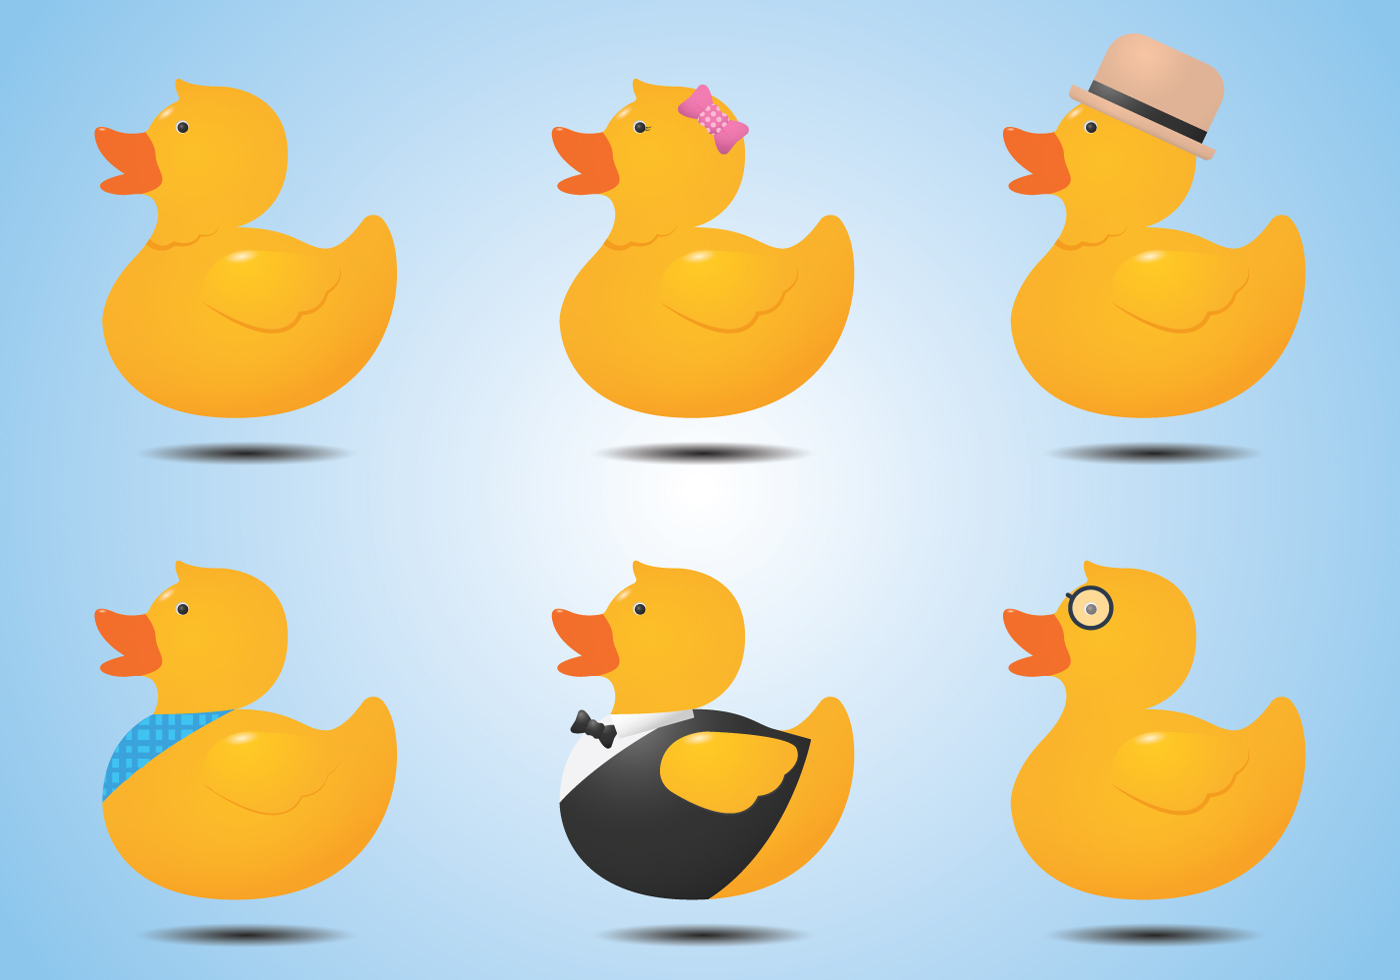 Fashionable Rubber Duck Vectors Download Free Vector Art